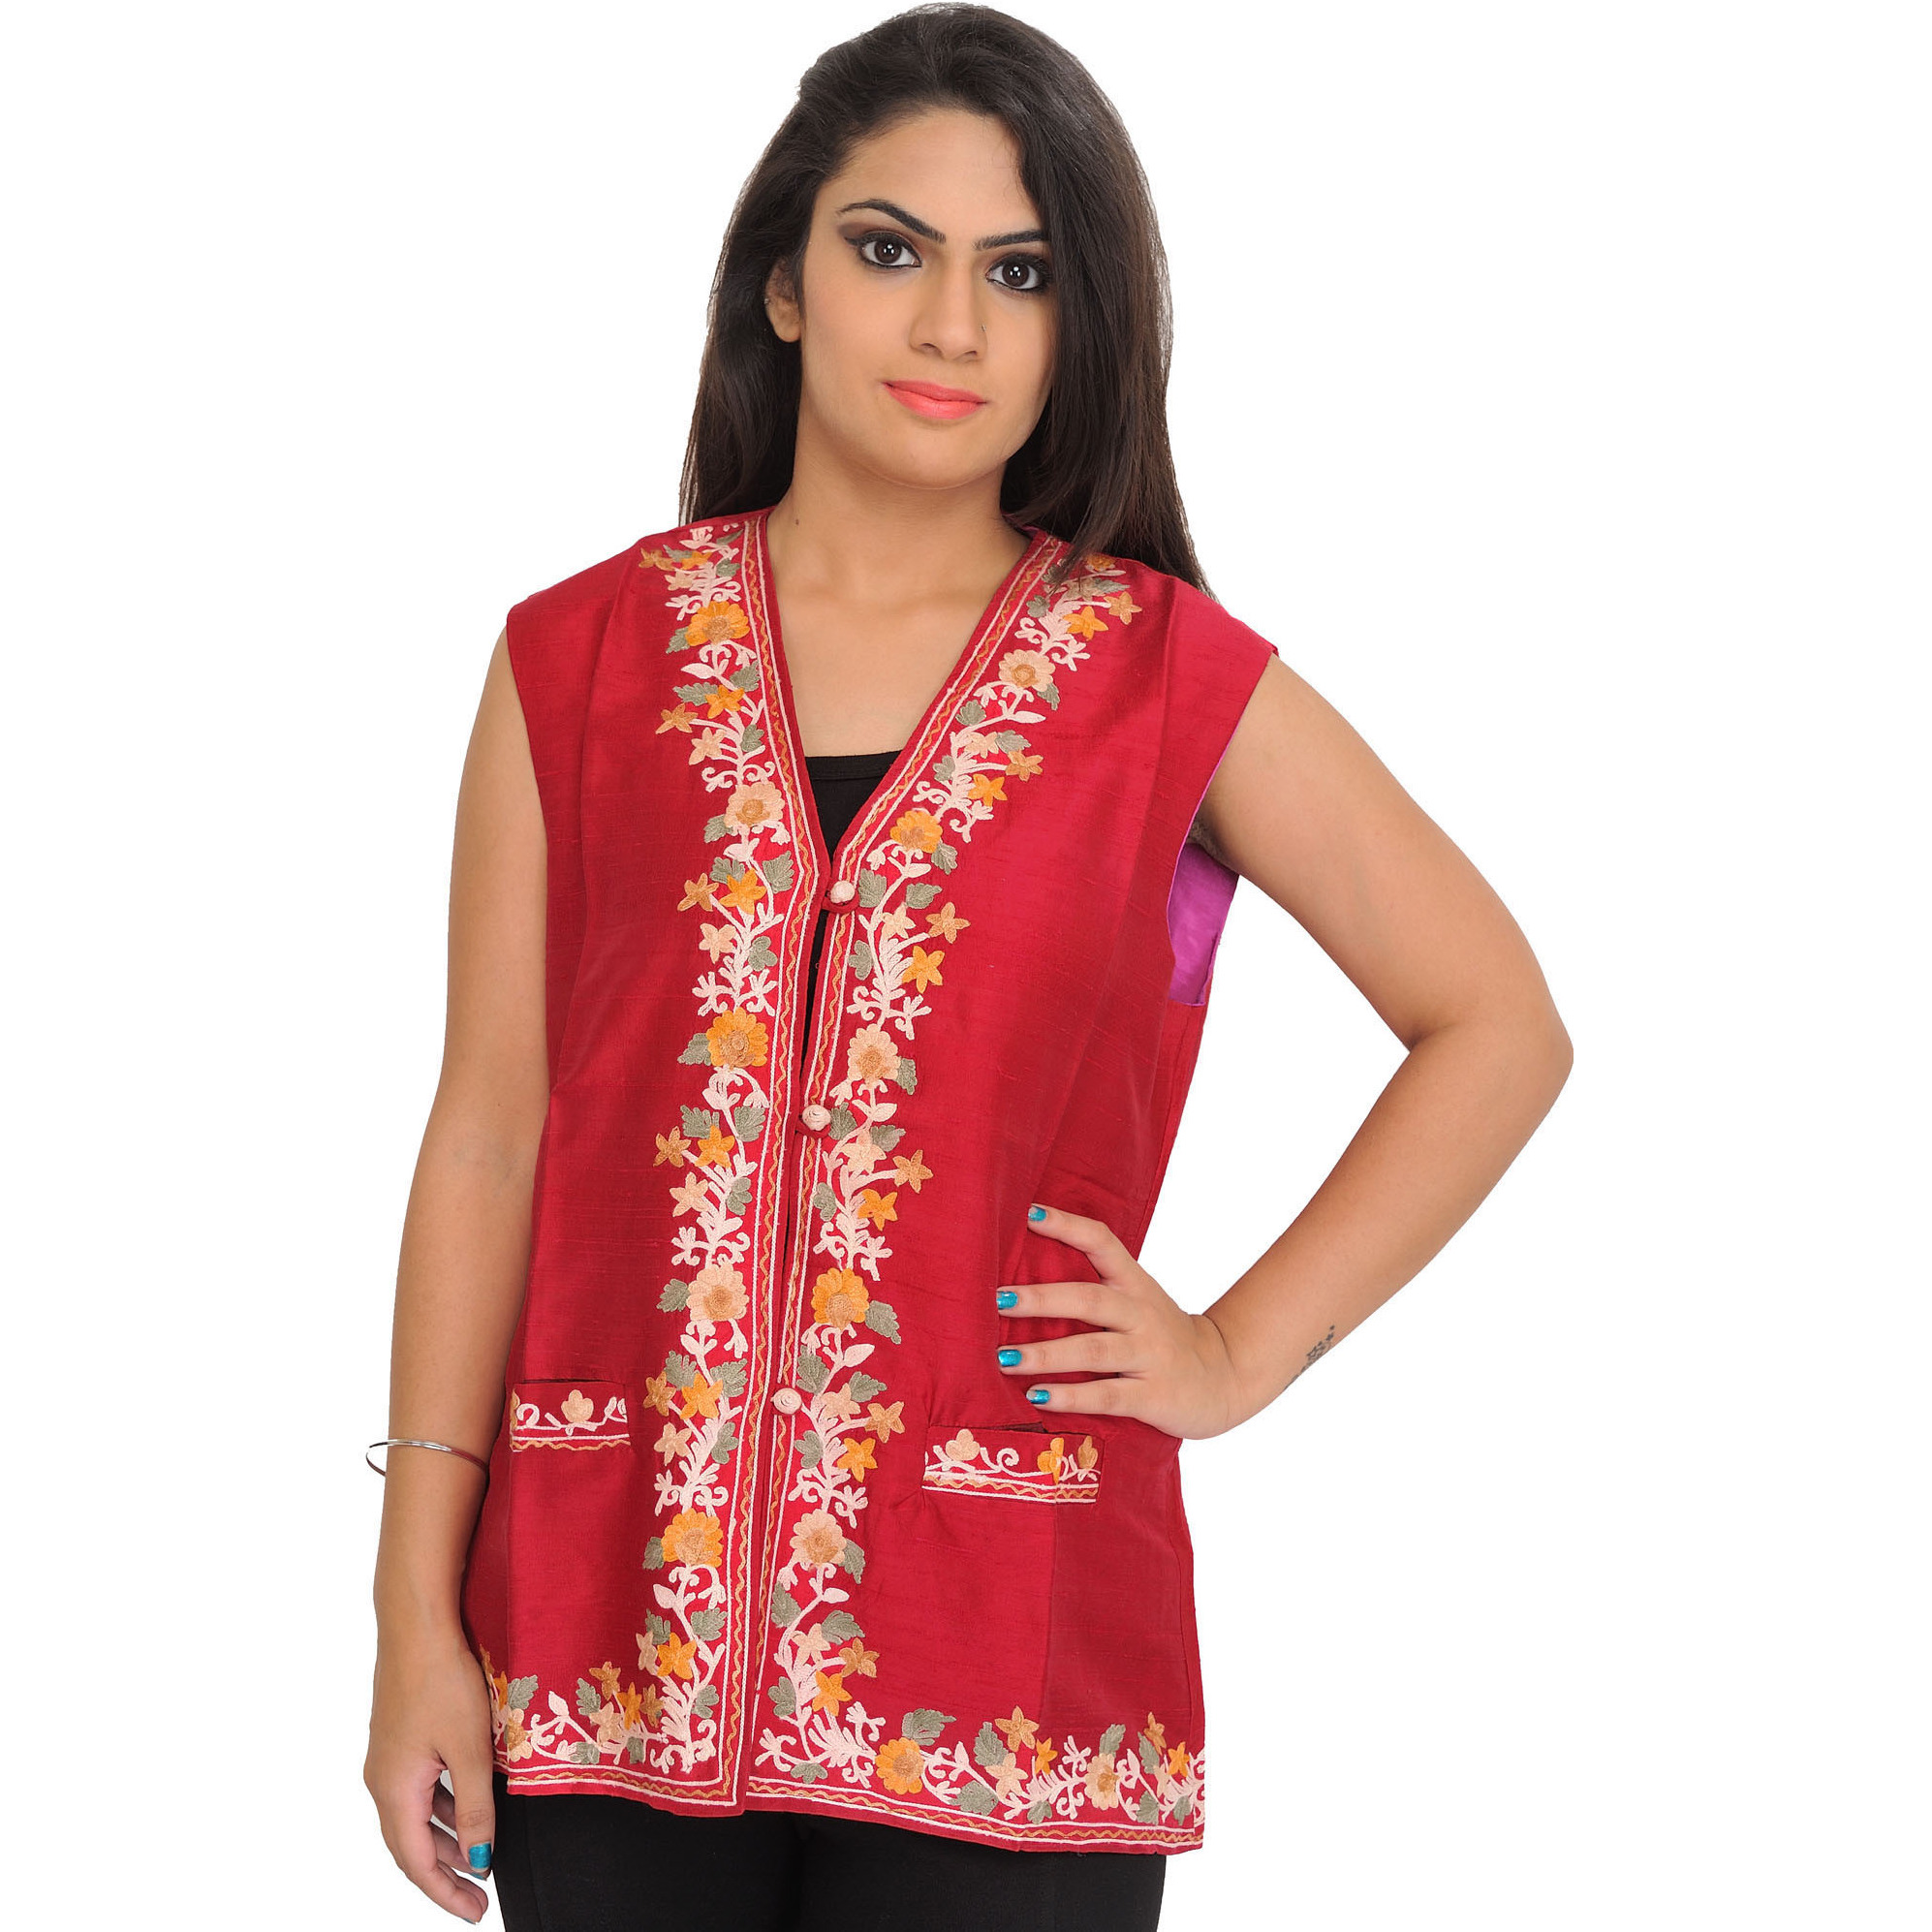 Claret-Red Waistcoat from Kashmir with Ari Hand-Embroidered Flowers on Border